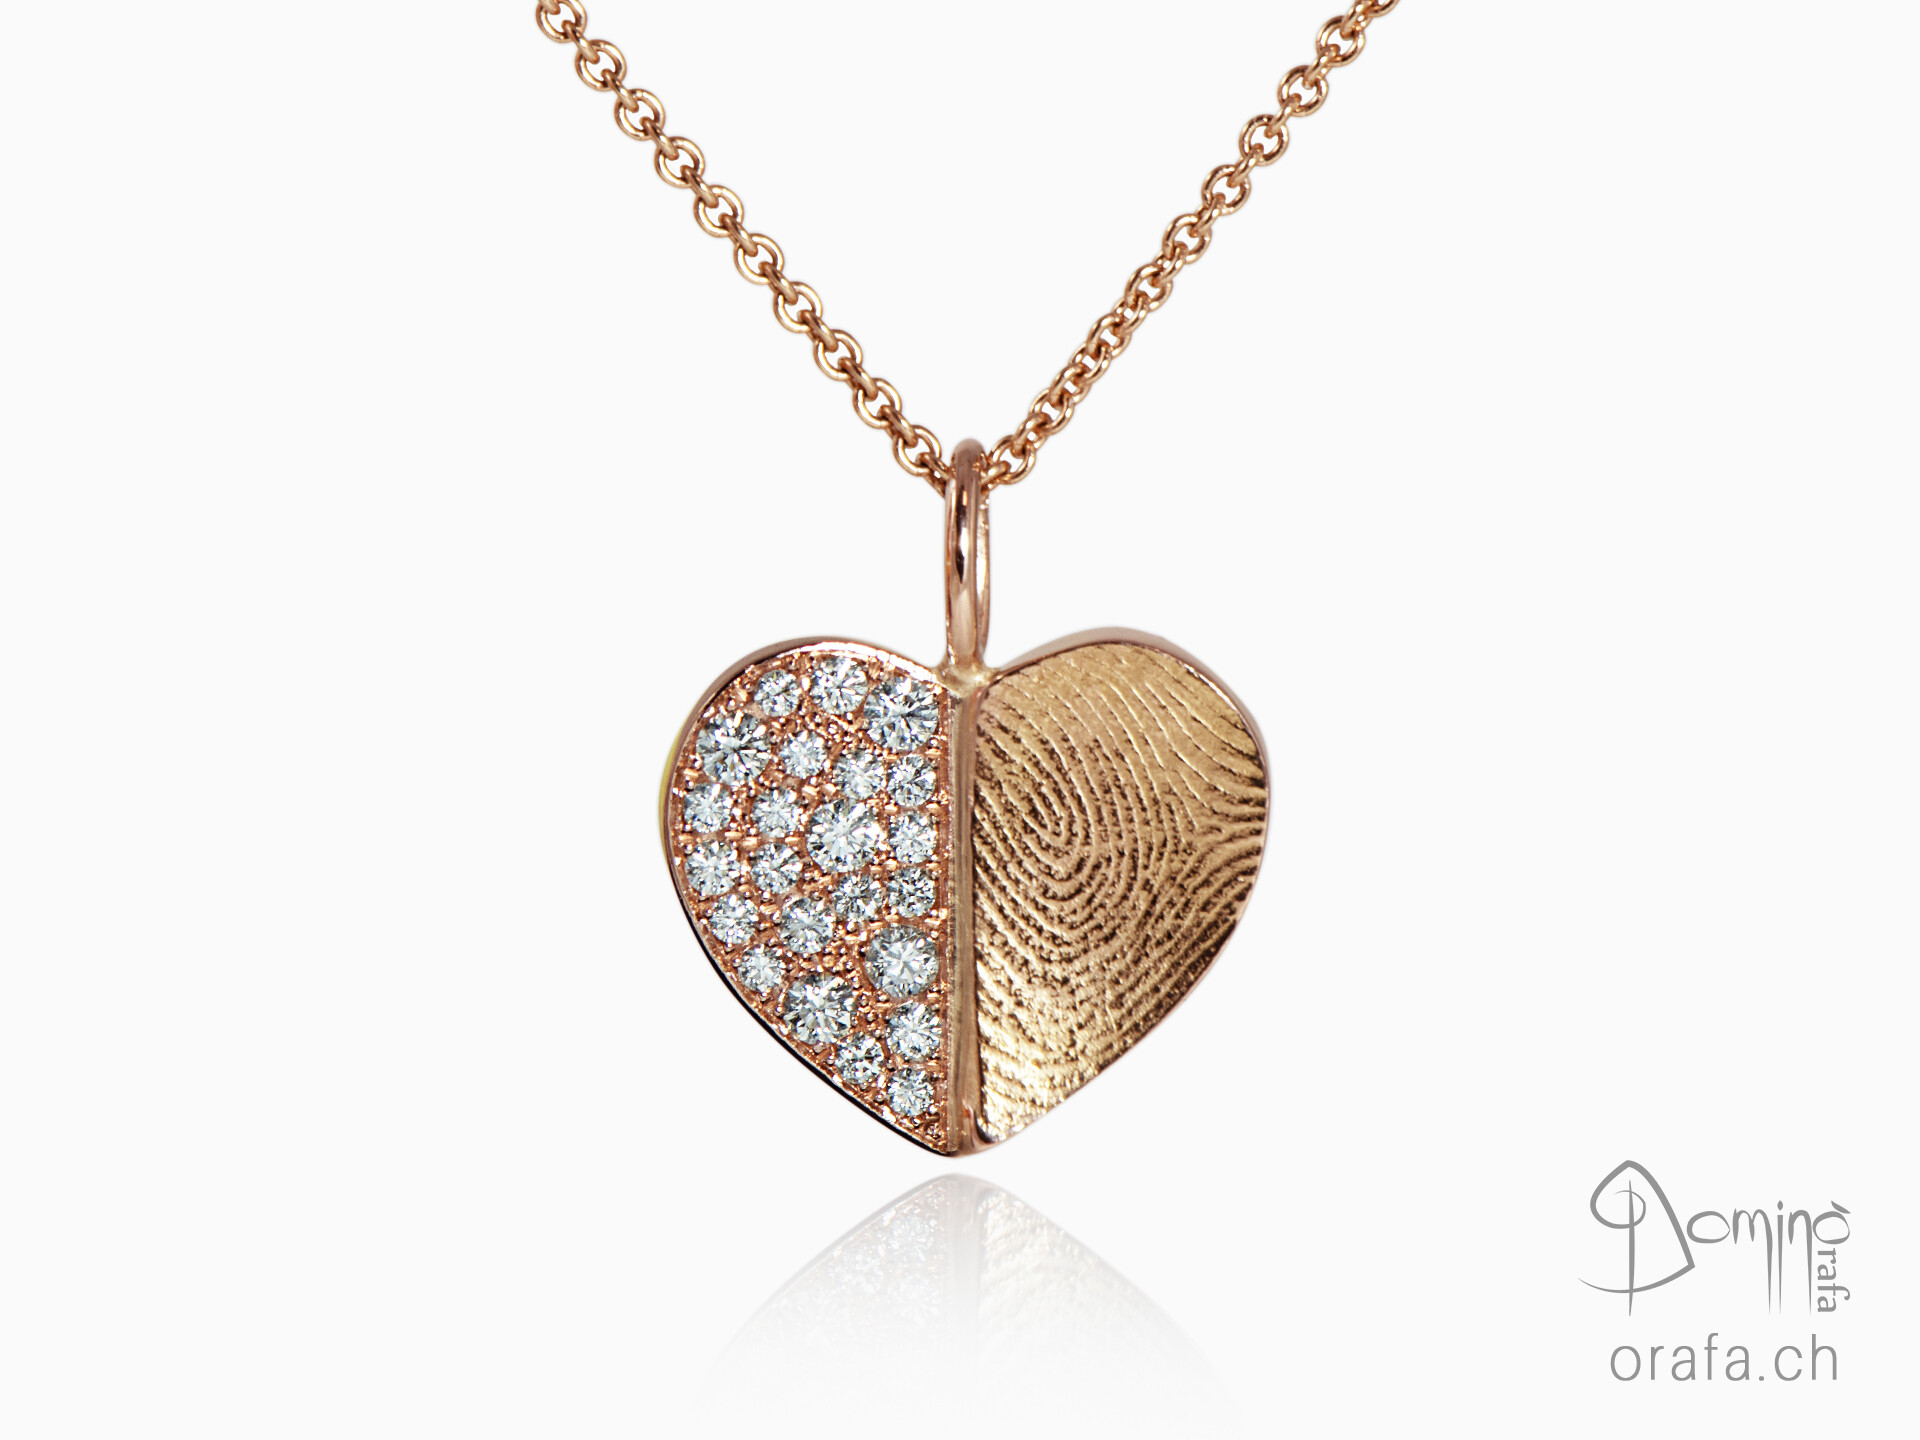 Heart pendant with fingerprint and diamonds